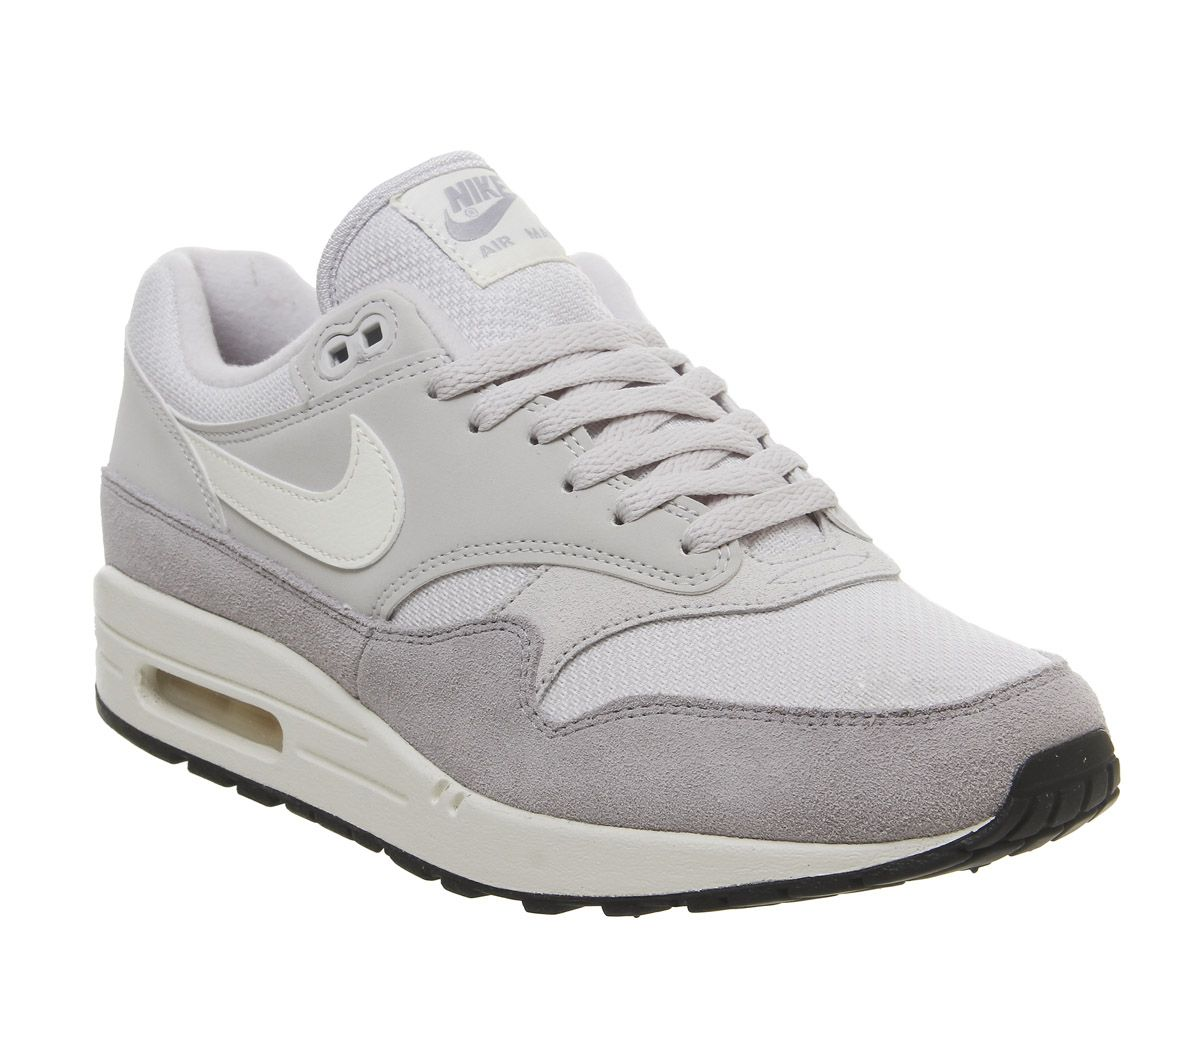 purchase cheap 93e22 1849c Nike Air Max 1 Trainers Vast Grey Sail Wolf Grey - His trainers